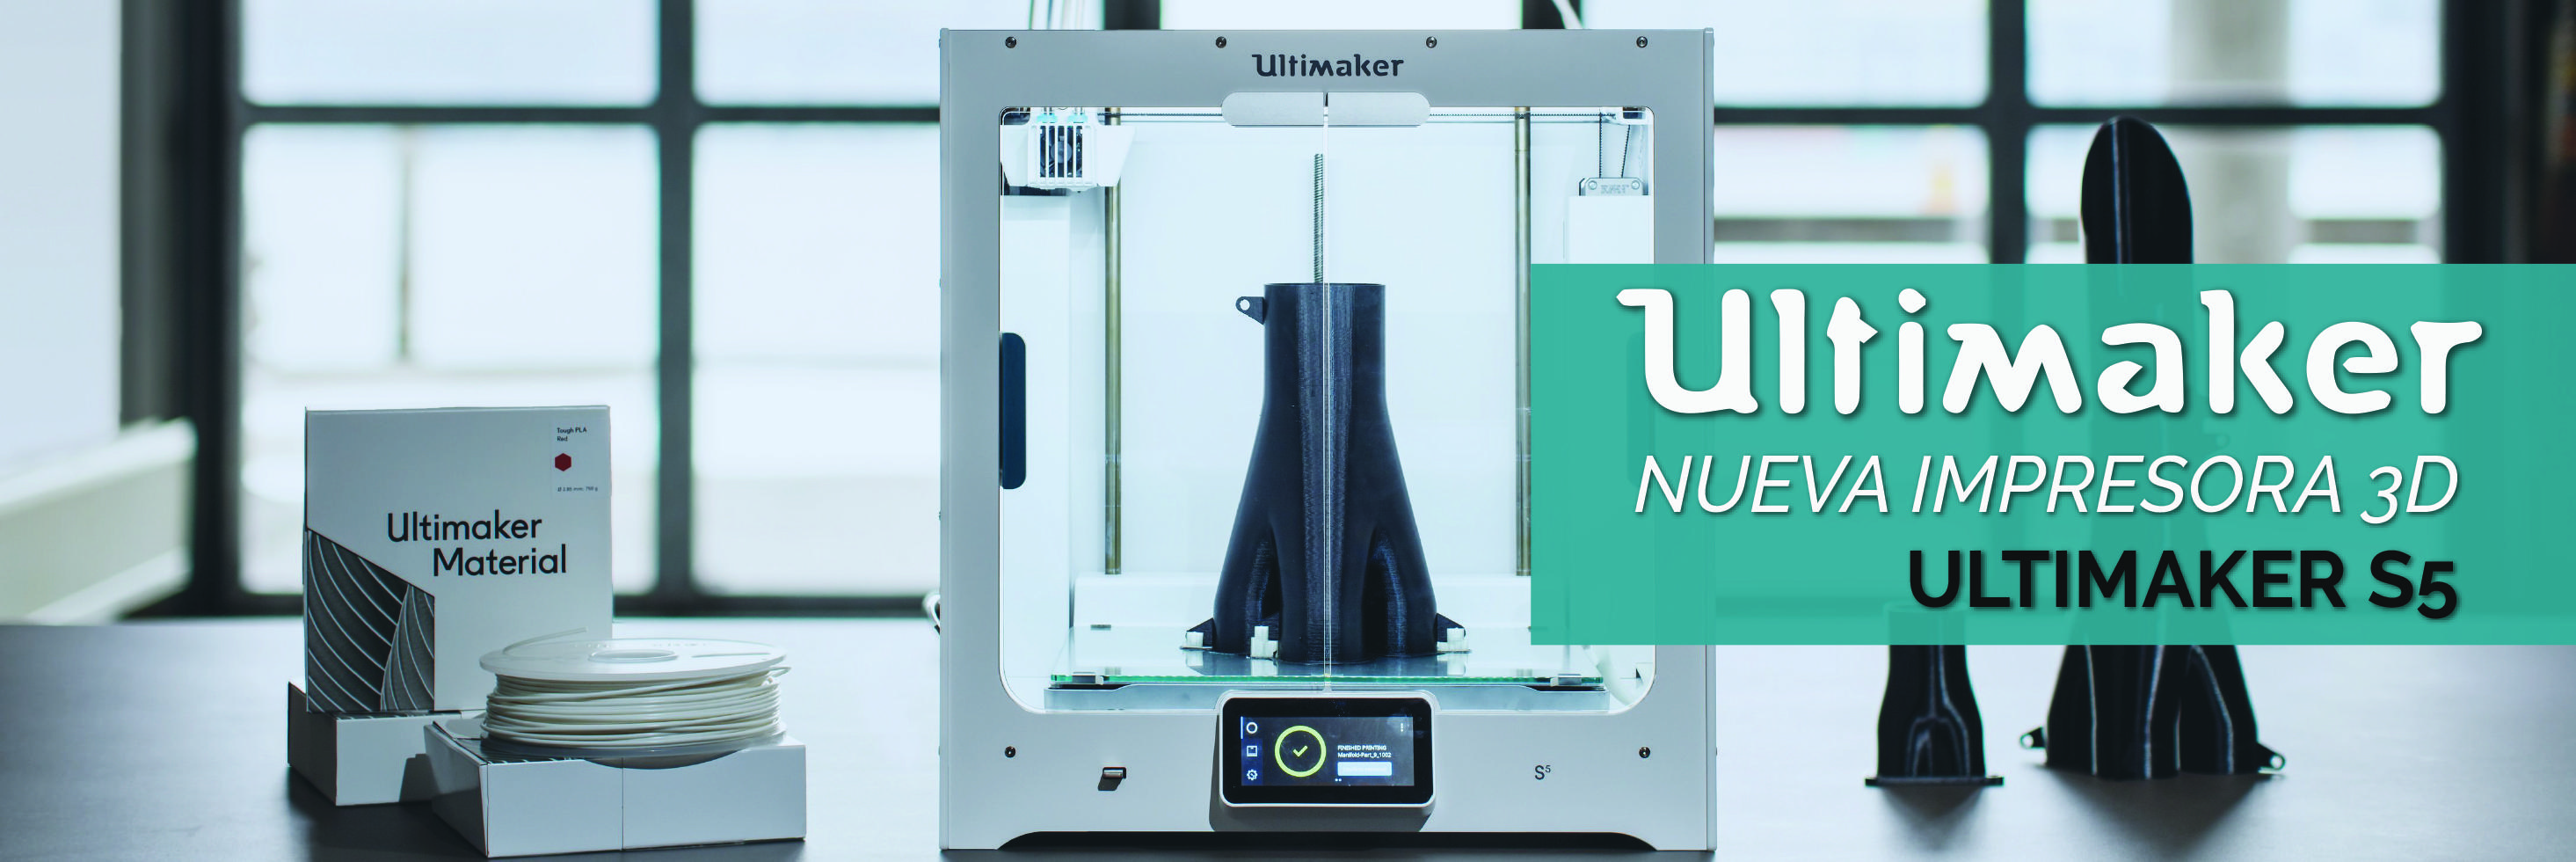 ultimakers5